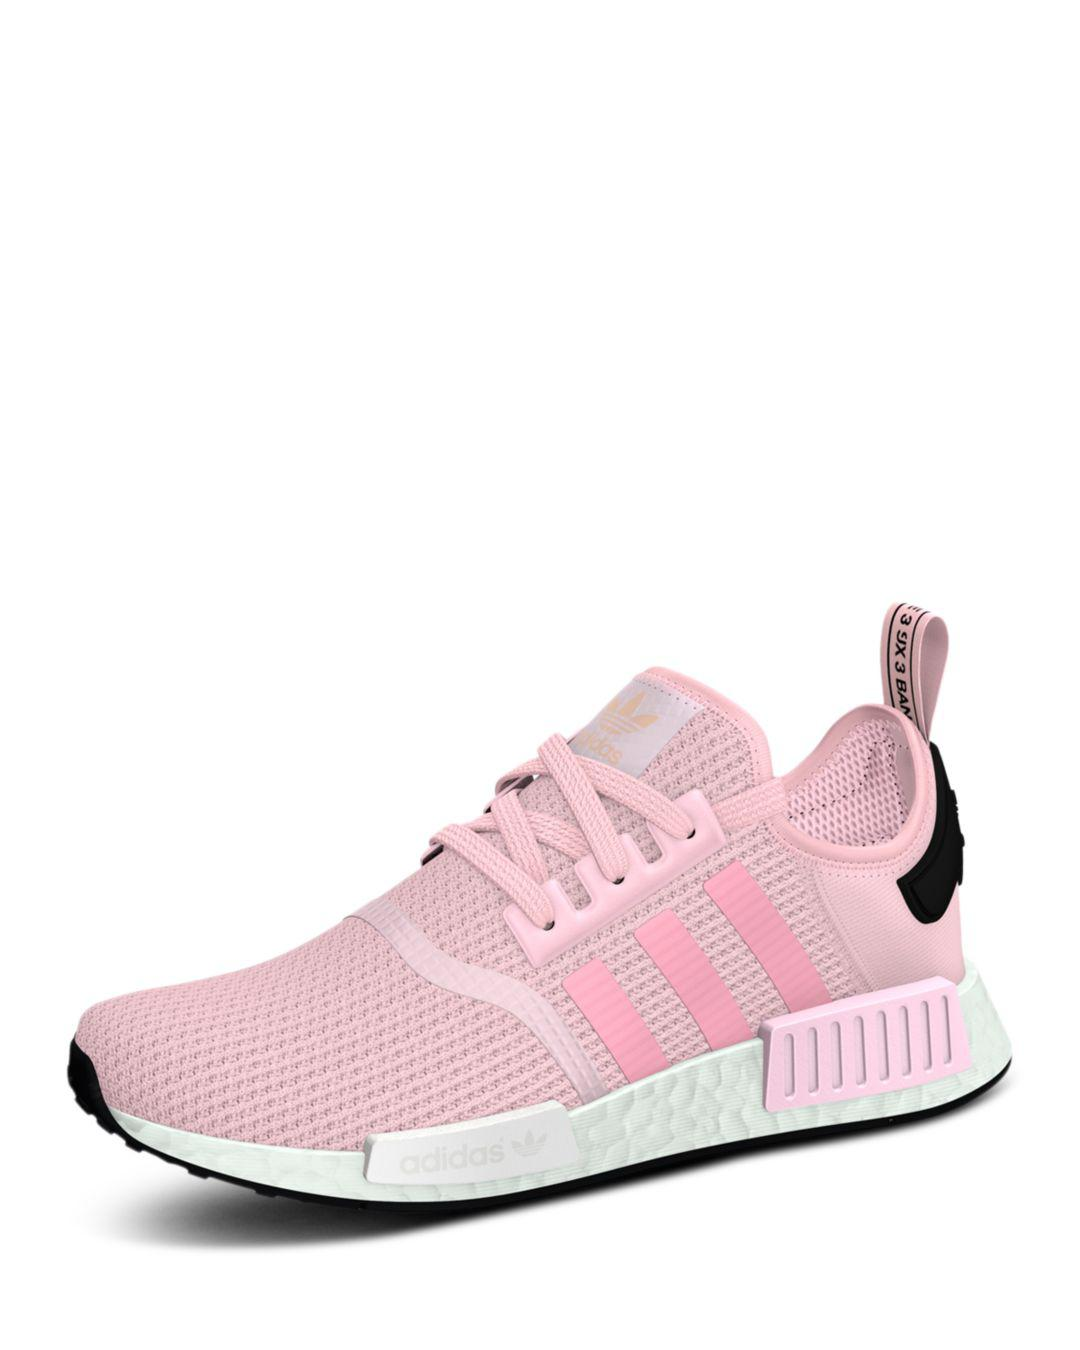 Lyst - adidas Women s Nmd R1 Knit Lace Up Sneakers in Pink 1800a3363673